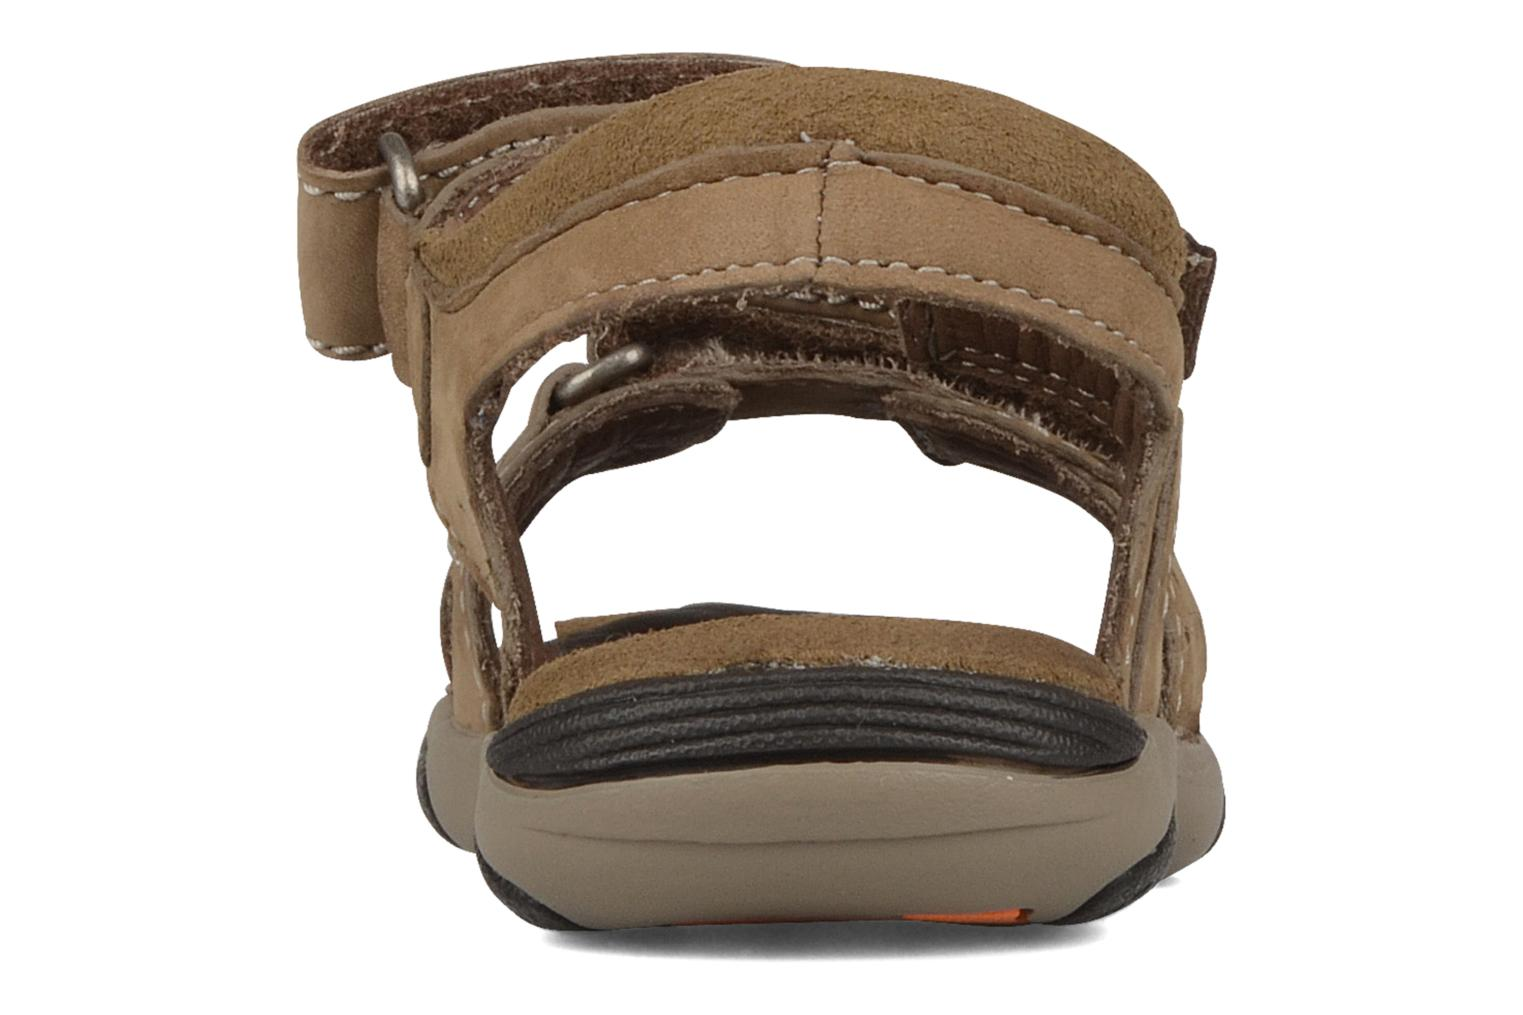 Earthkeepers oyster river sandal Greige brown